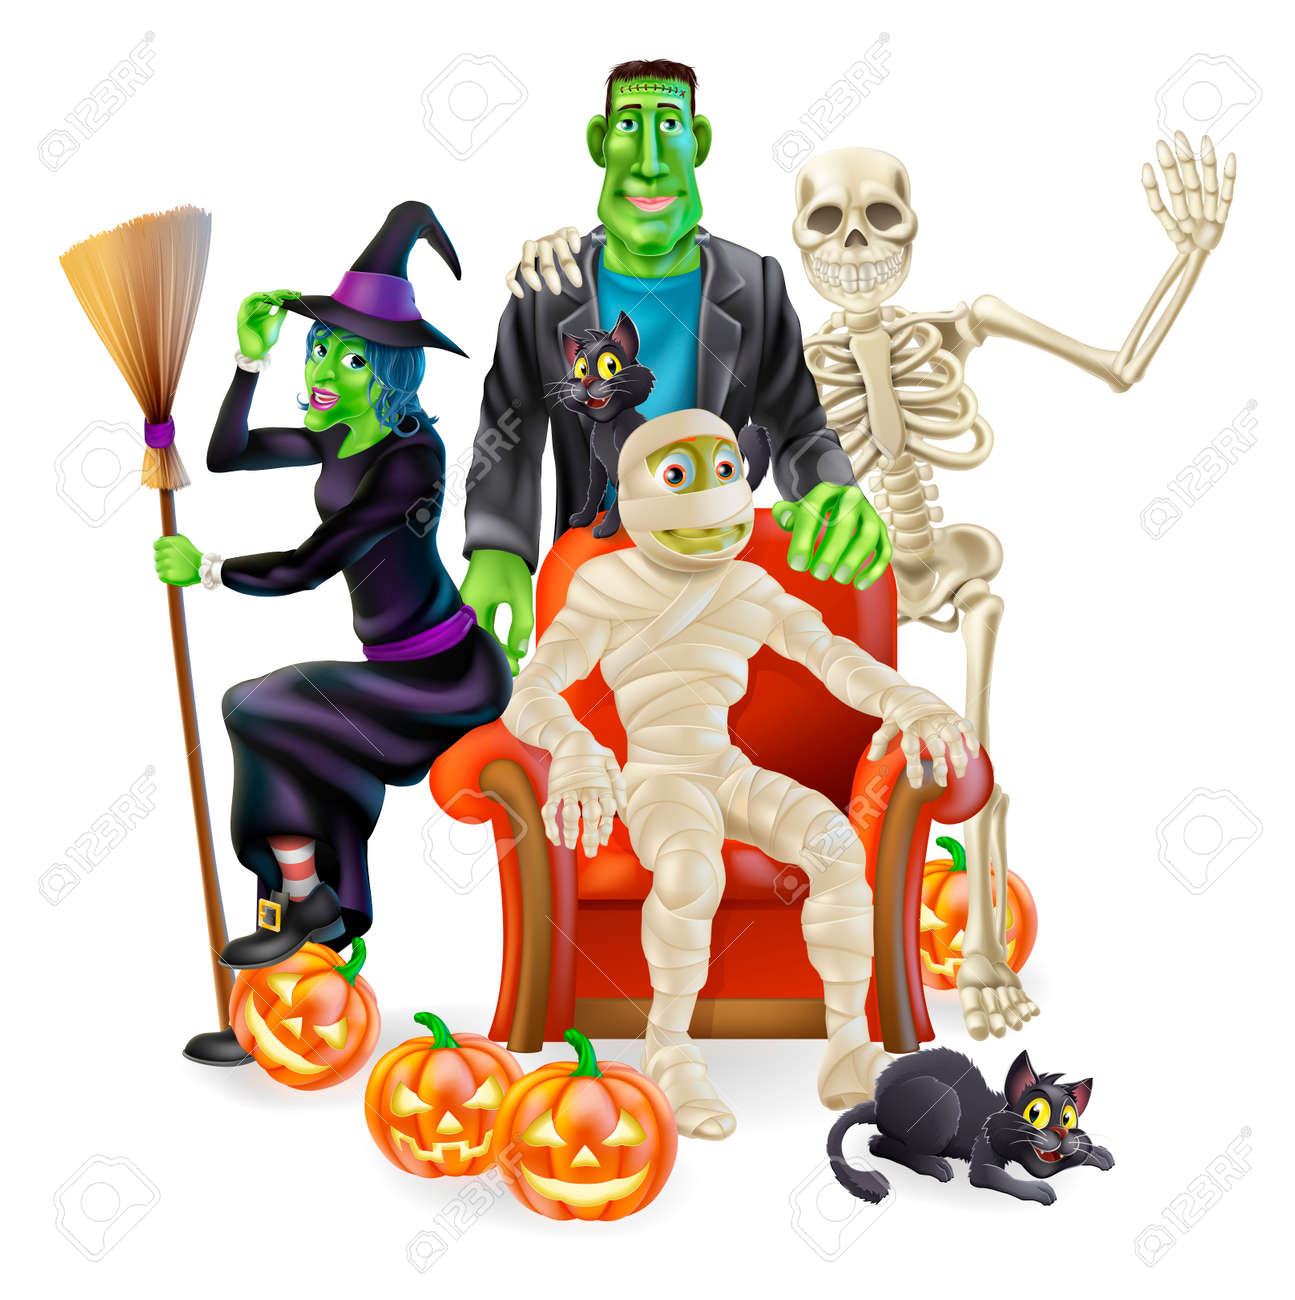 Halloween Monster Images & Stock Pictures. Royalty Free Halloween ...